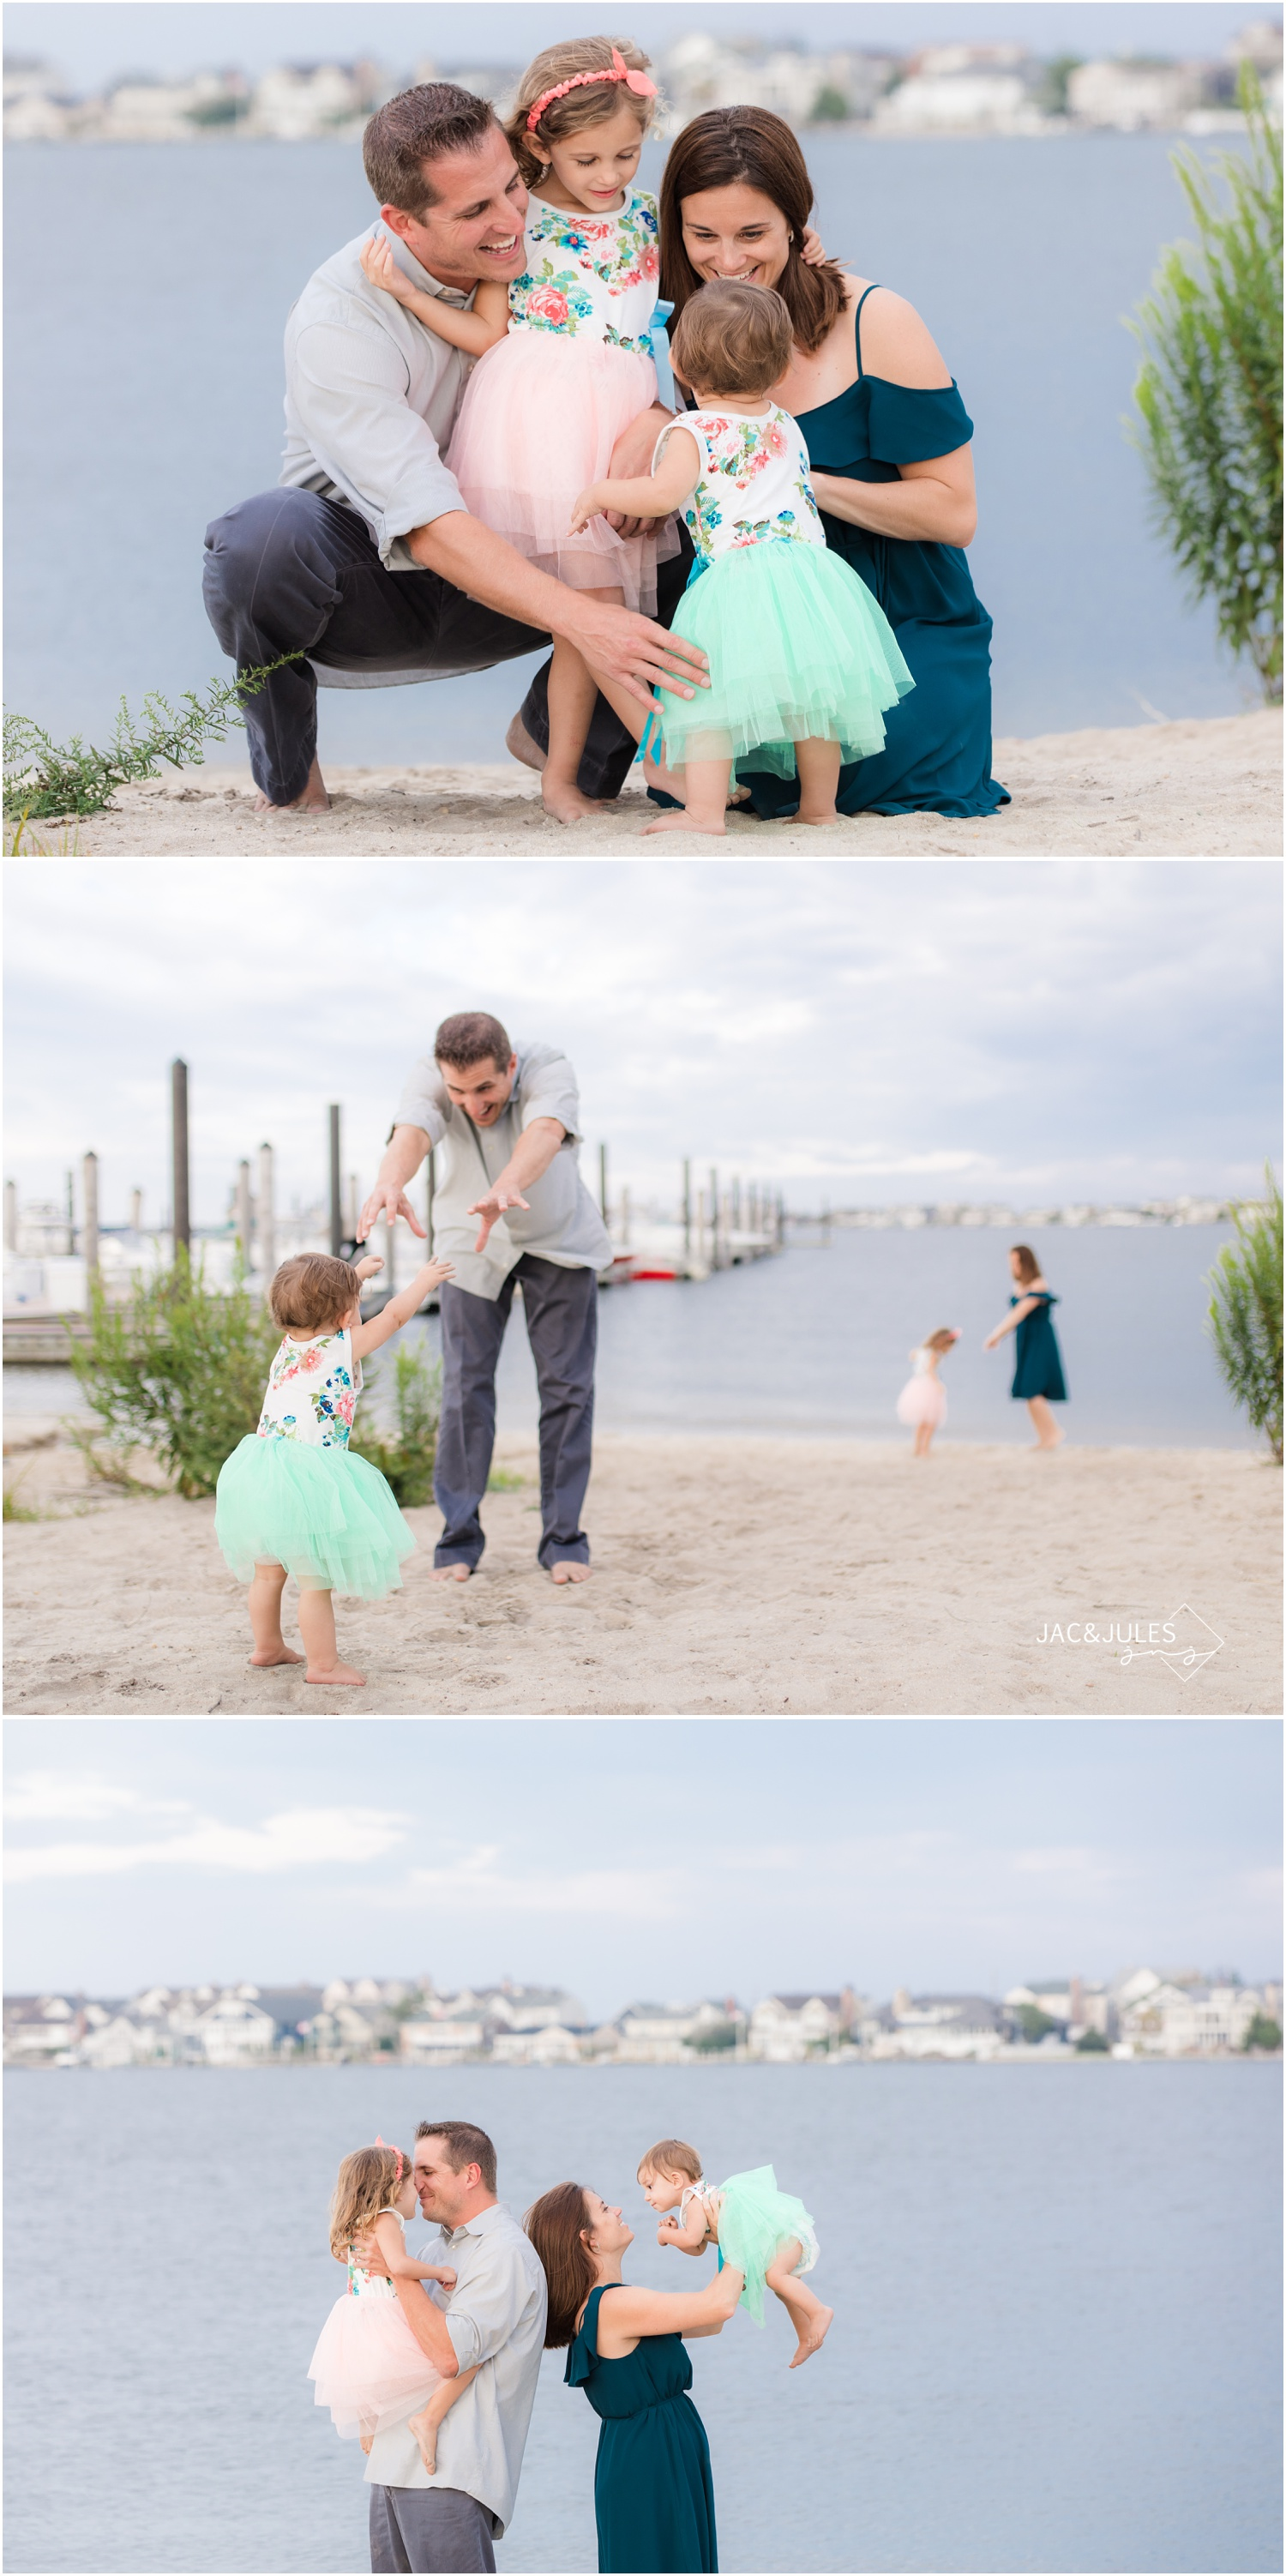 fun candid family photos on the bay in Mantoloking, NJ.